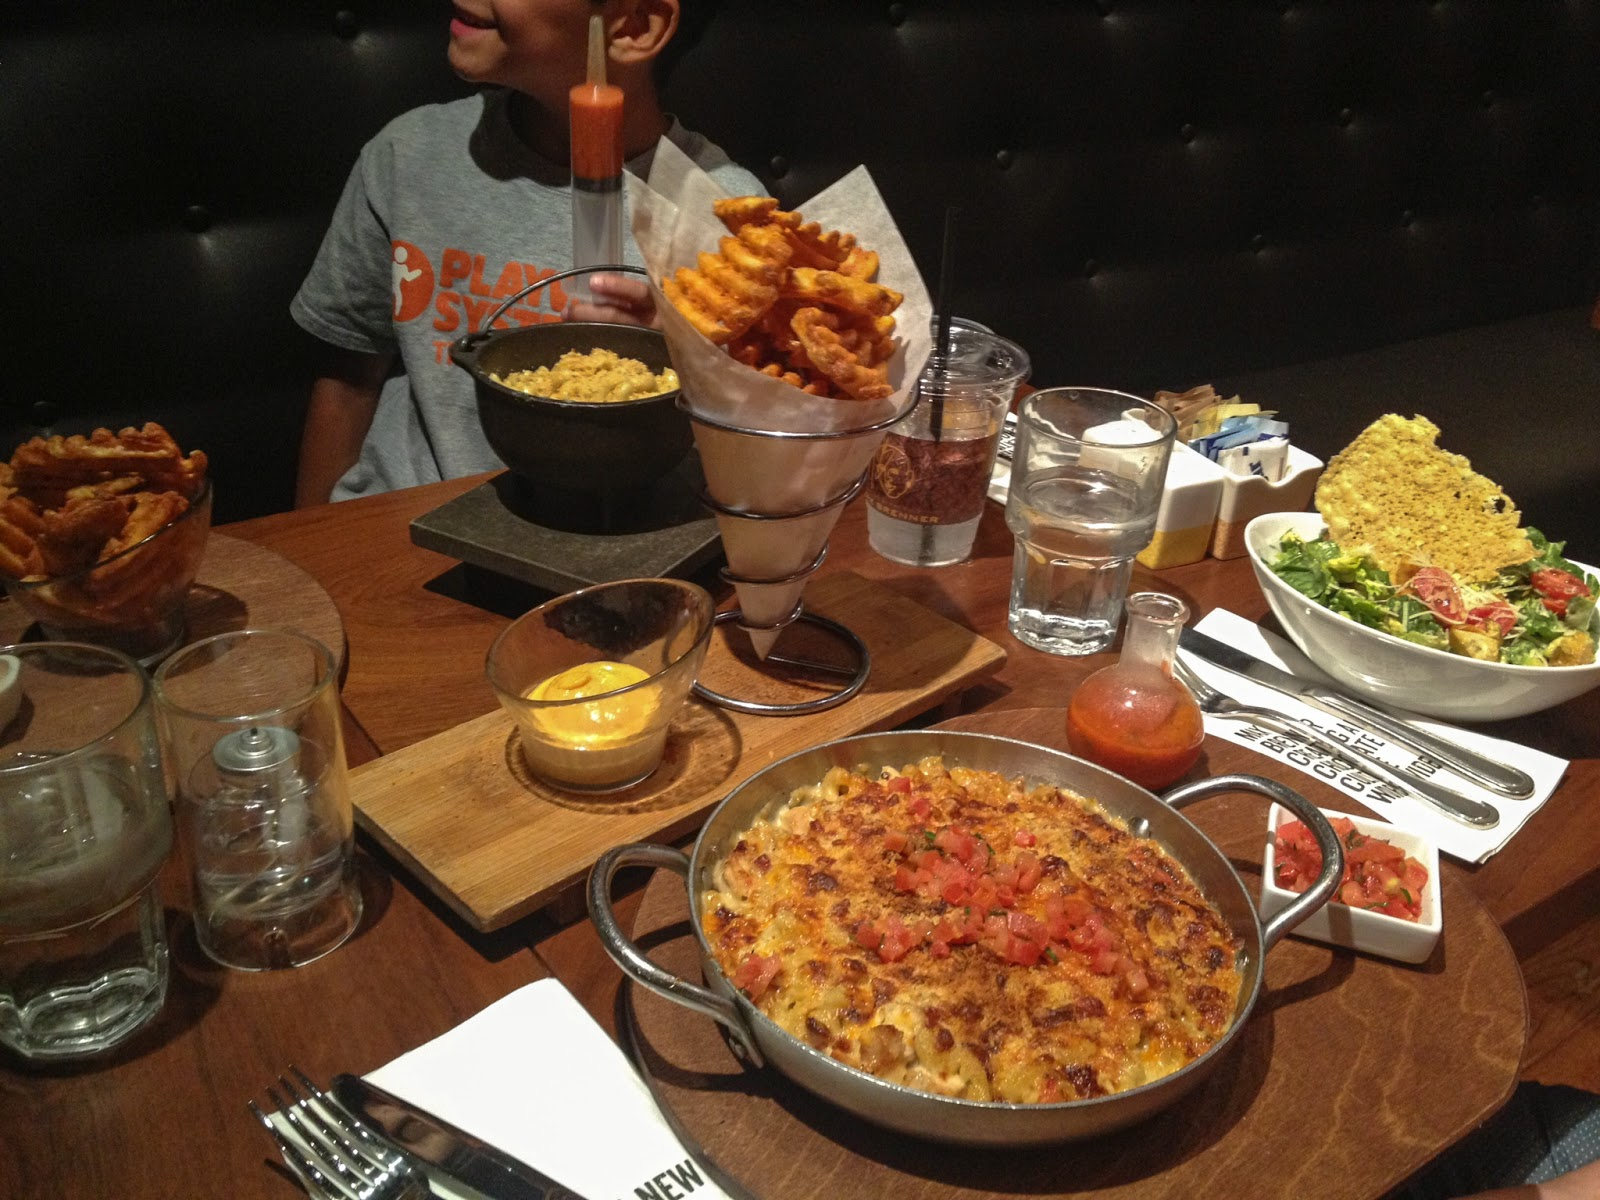 max brenner, max brenner las vegas, chocolate by the bald man, gourmet mac and cheese, southwestern caesar salad, waffle fries,